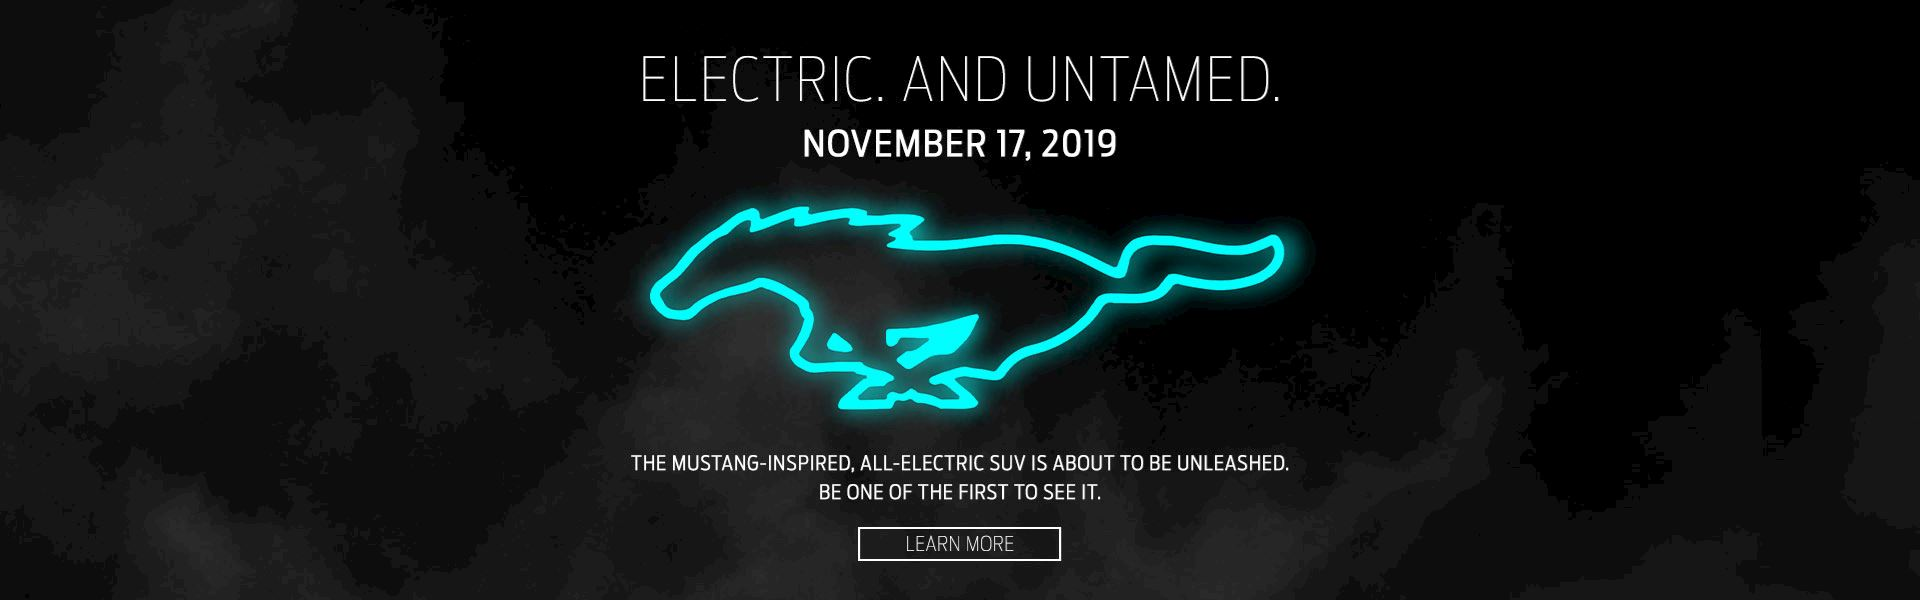 11.17.19...you don't want to miss Ford's newest reveal